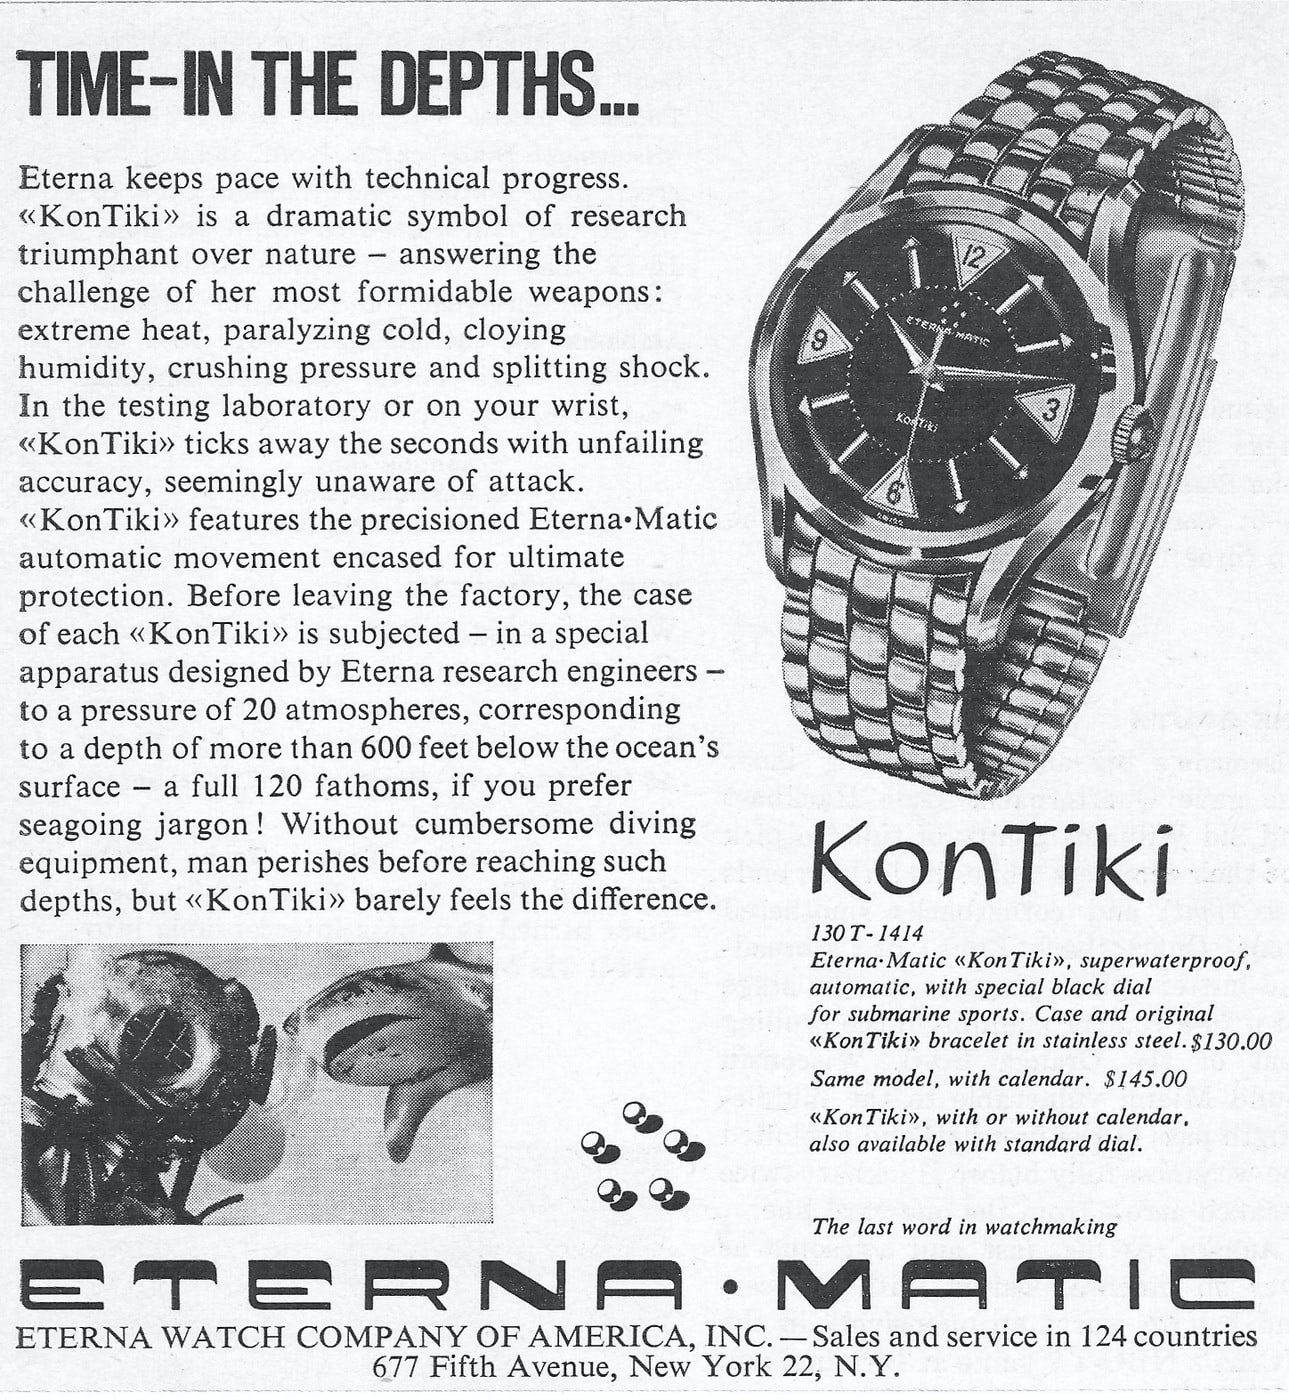 Eterna KonTiki advertising Bring a Loupe: A Rolex 'Pre-Daytona' Reference 6234, A Double-Signed Excelsior Park Decimal, An Early Eterna KonTiki, And More Bring a Loupe: A Rolex 'Pre-Daytona' Reference 6234, A Double-Signed Excelsior Park Decimal, An Early Eterna KonTiki, And More eterna matic kontiki watch 1